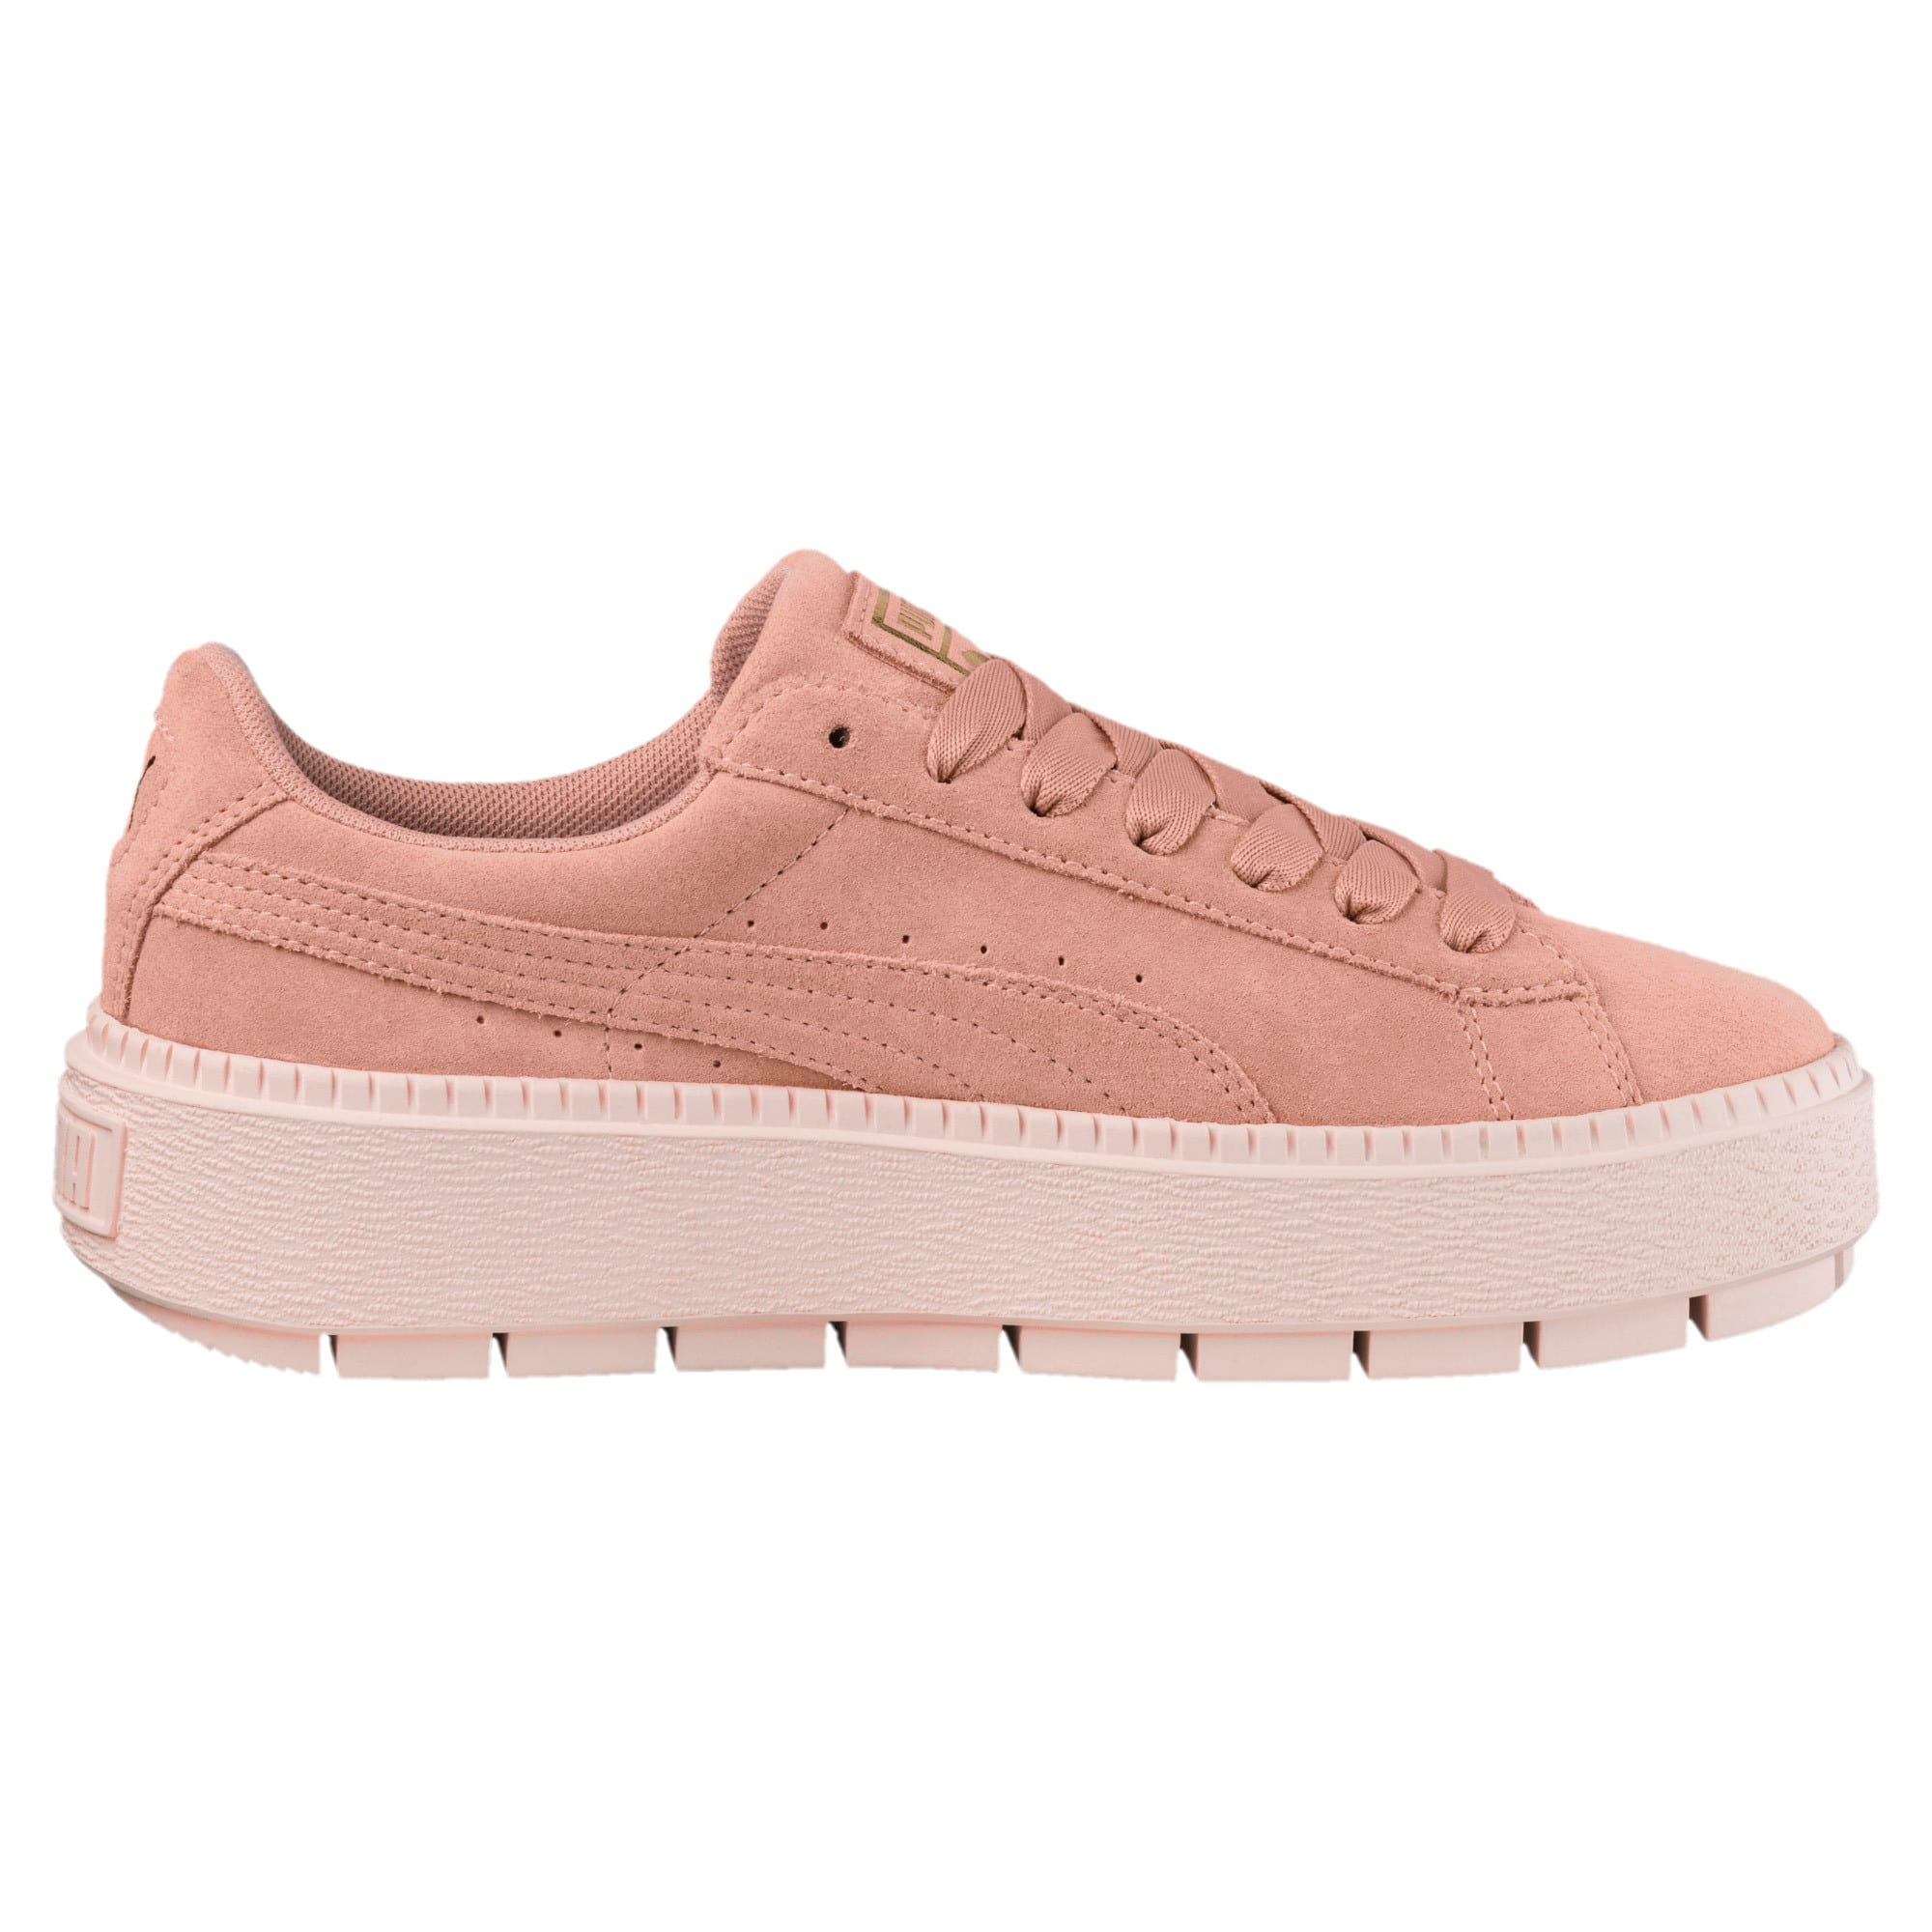 Thumbnail 3 of Platform Trace Women's Trainers, Peach Beige-Pearl, medium-IND